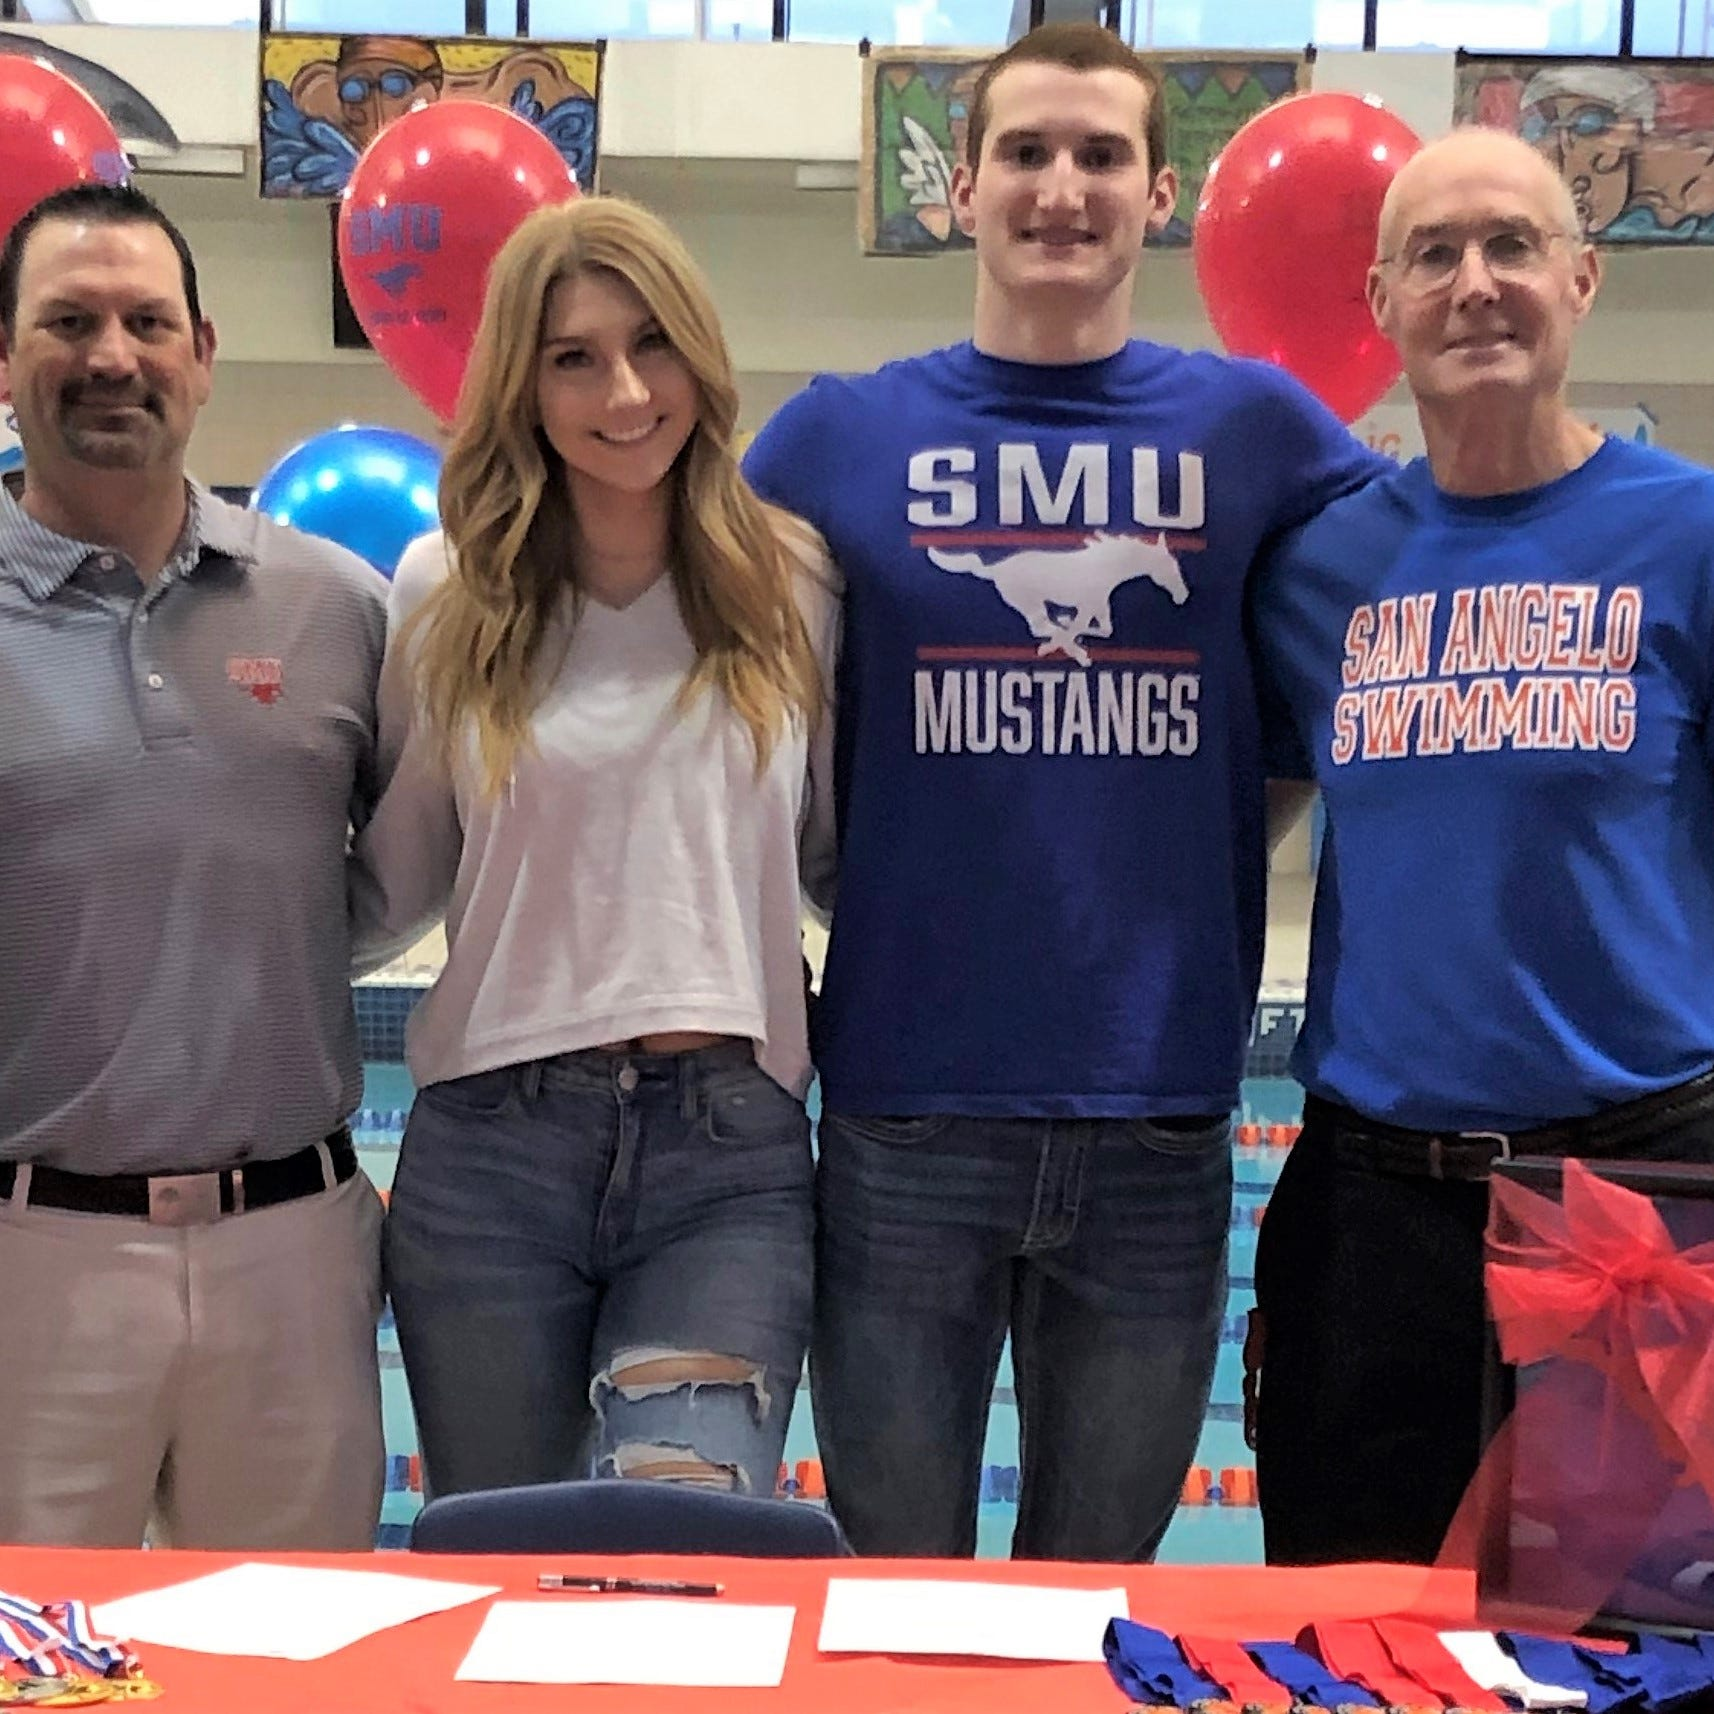 San Angelo Central swimmer Hill ready to make splash at SMU